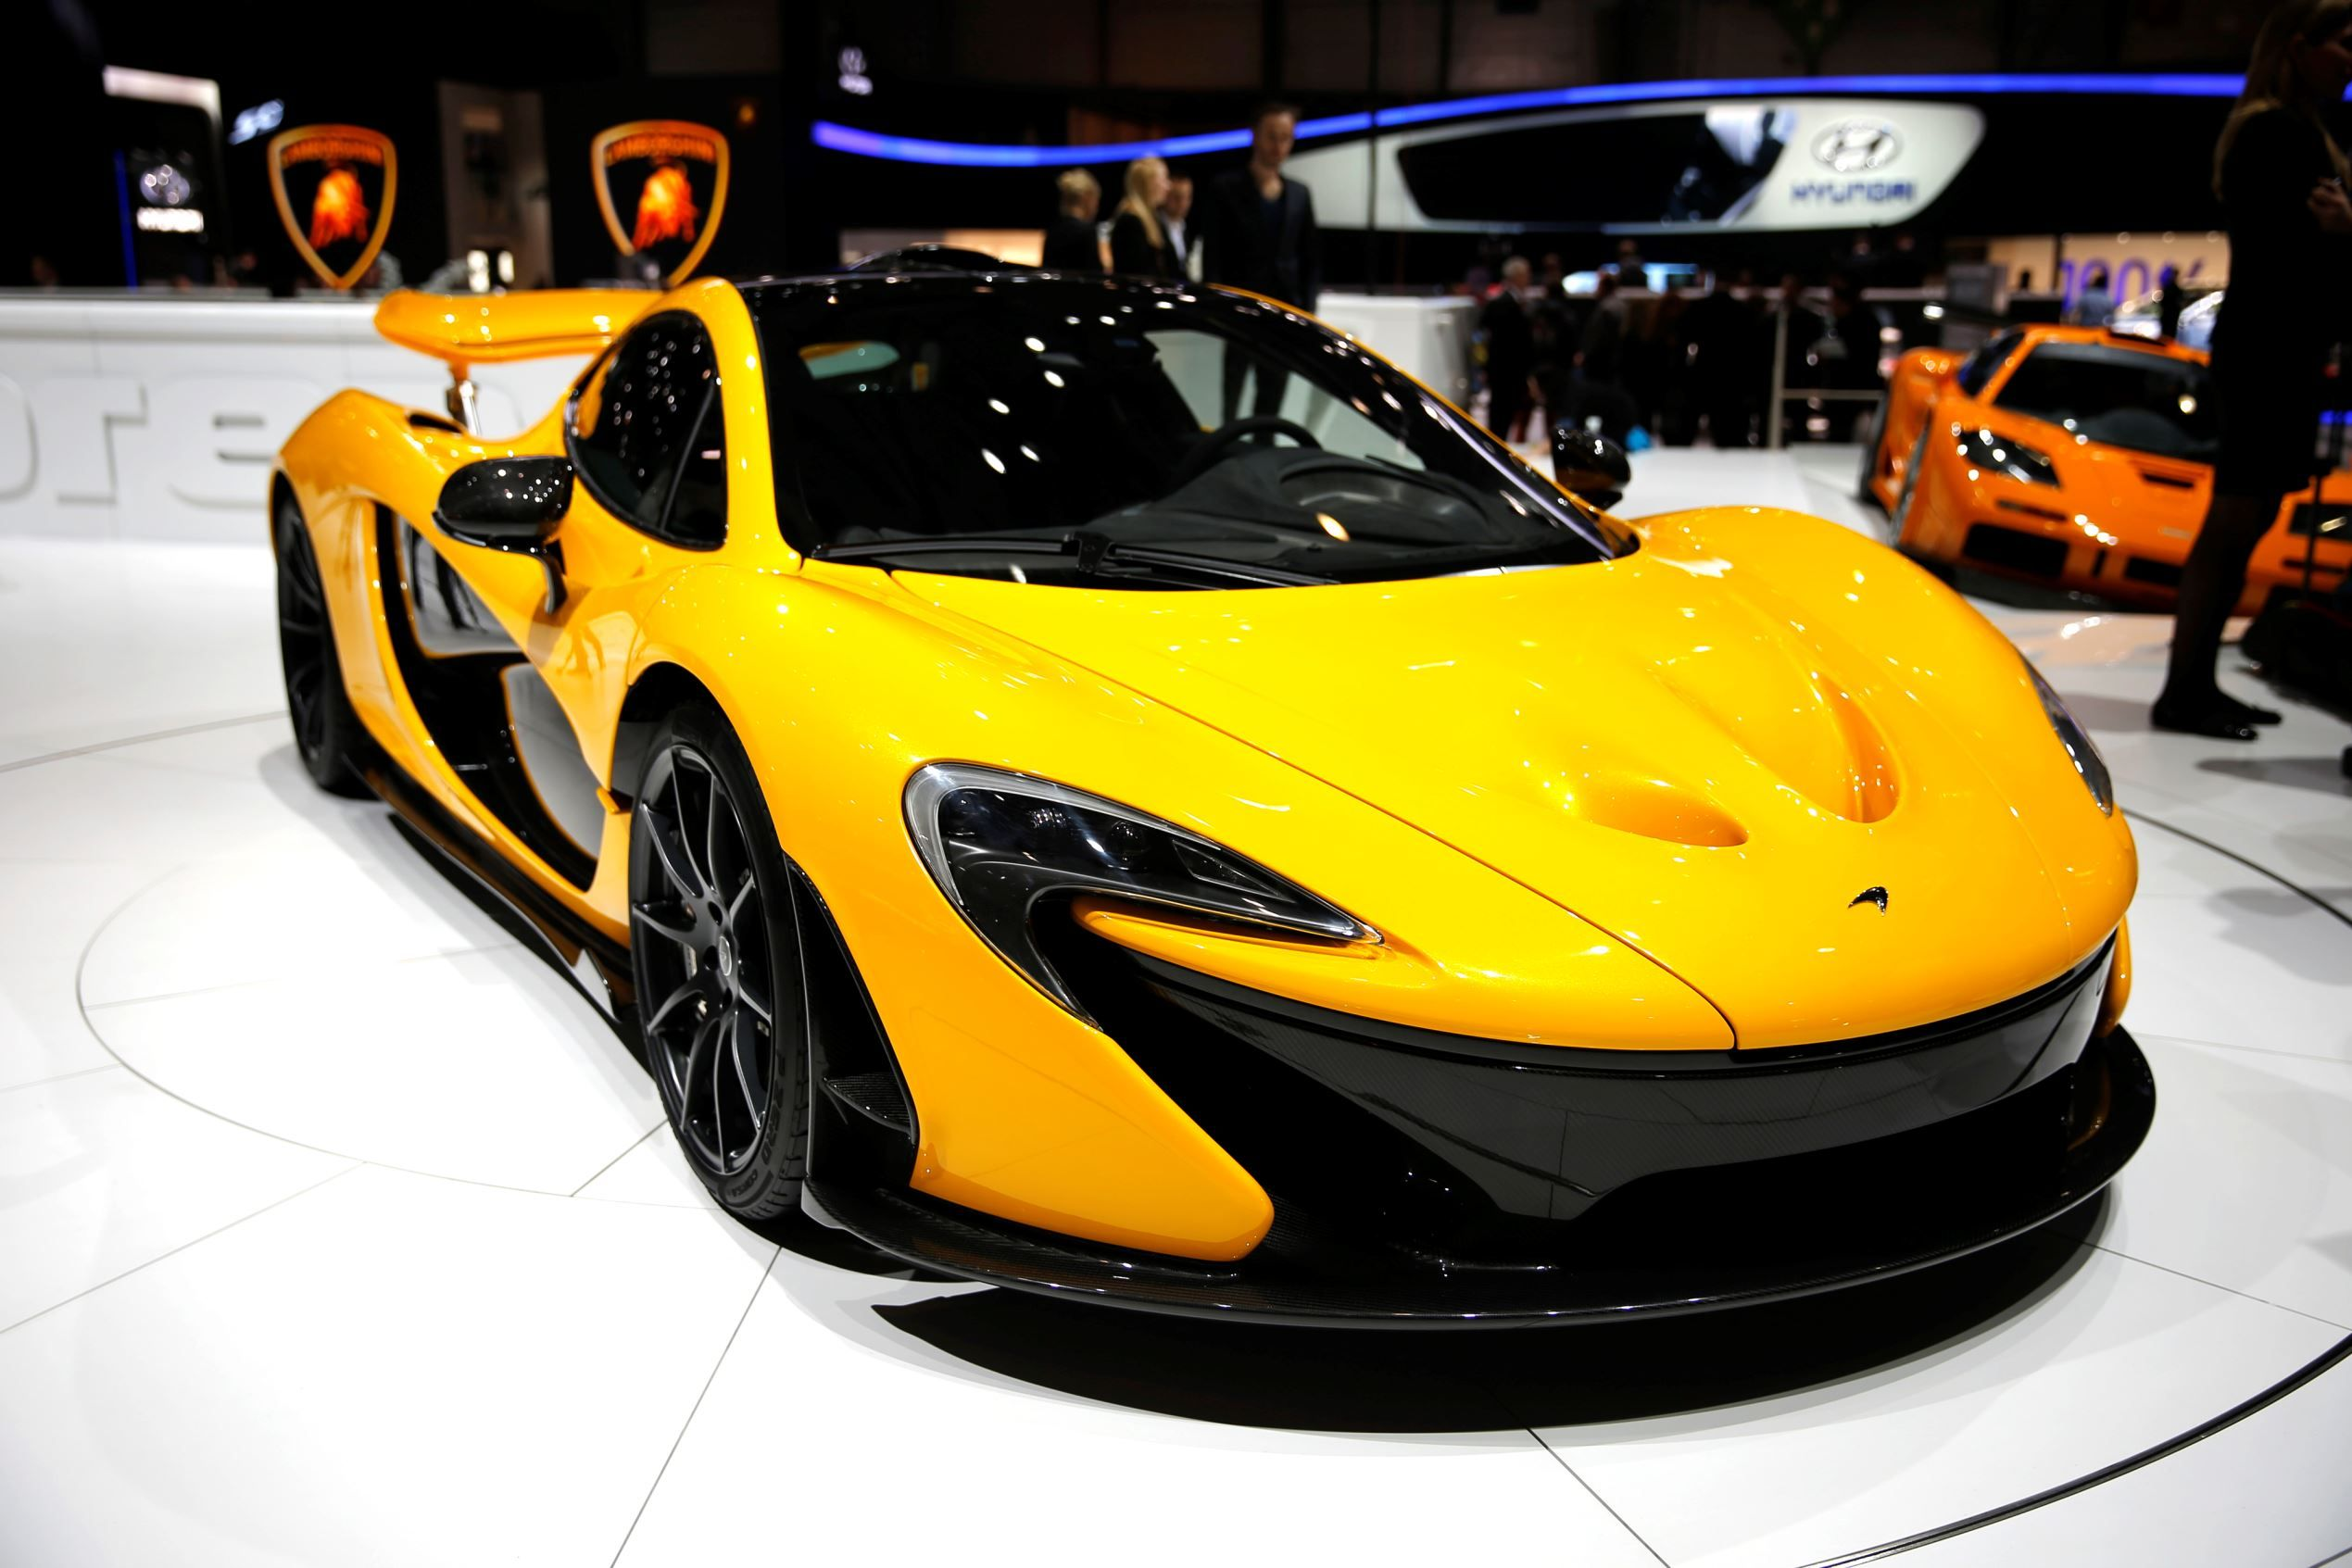 mclaren p1 engine bay. mclaren p1 this supercar has a 38liter v8 engine and electric motor that together mclaren bay